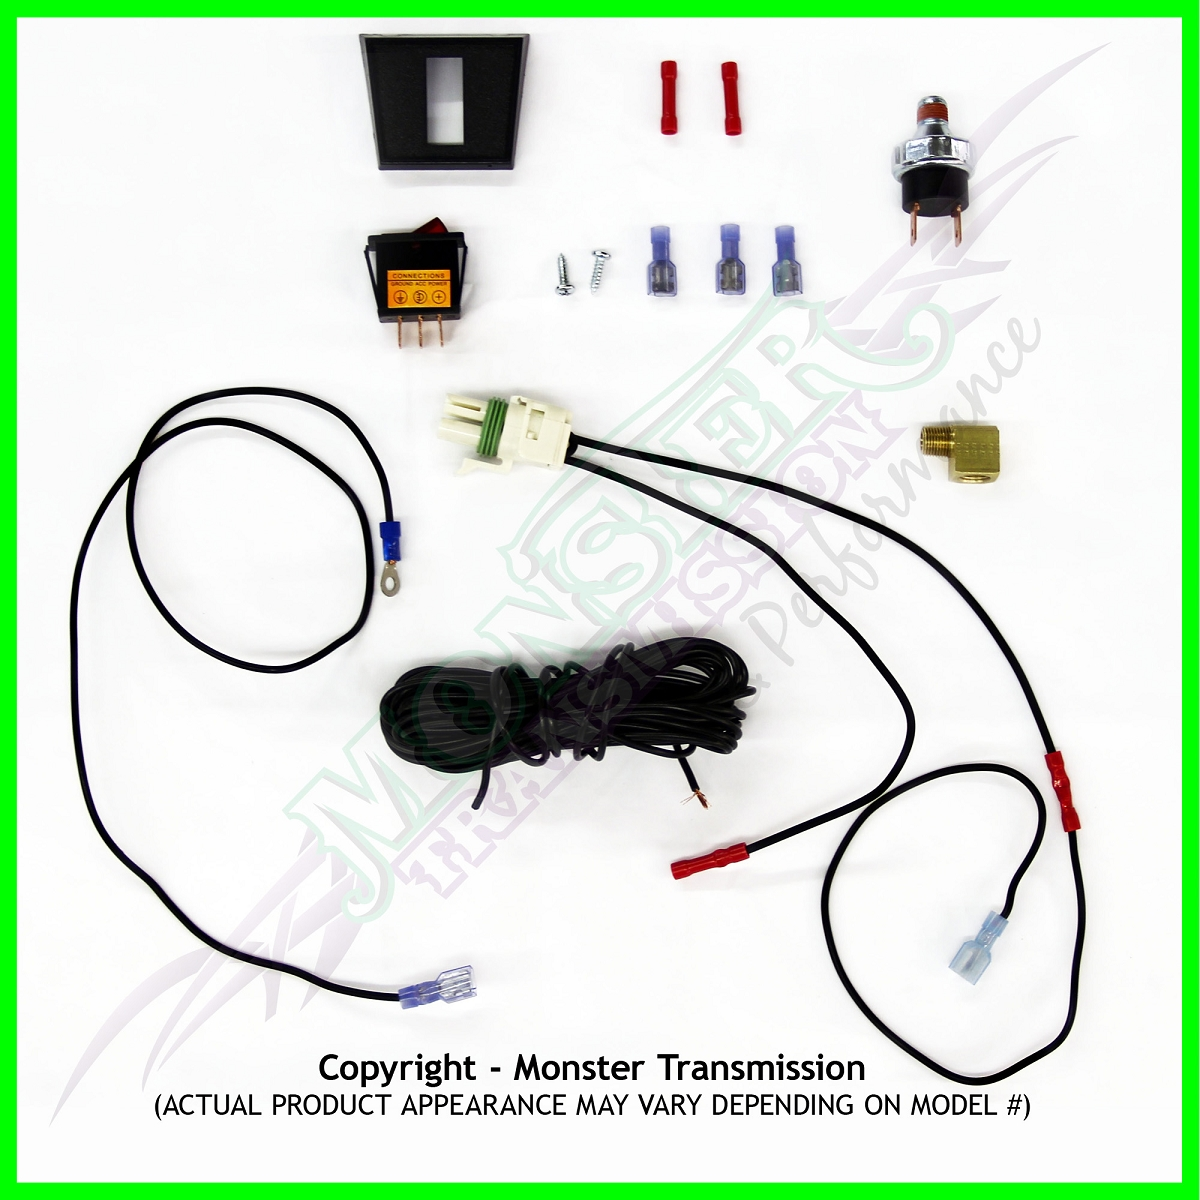 productpicmt 200 4r external lock up kit 2004 wiring diagram jayco at virtualis.co